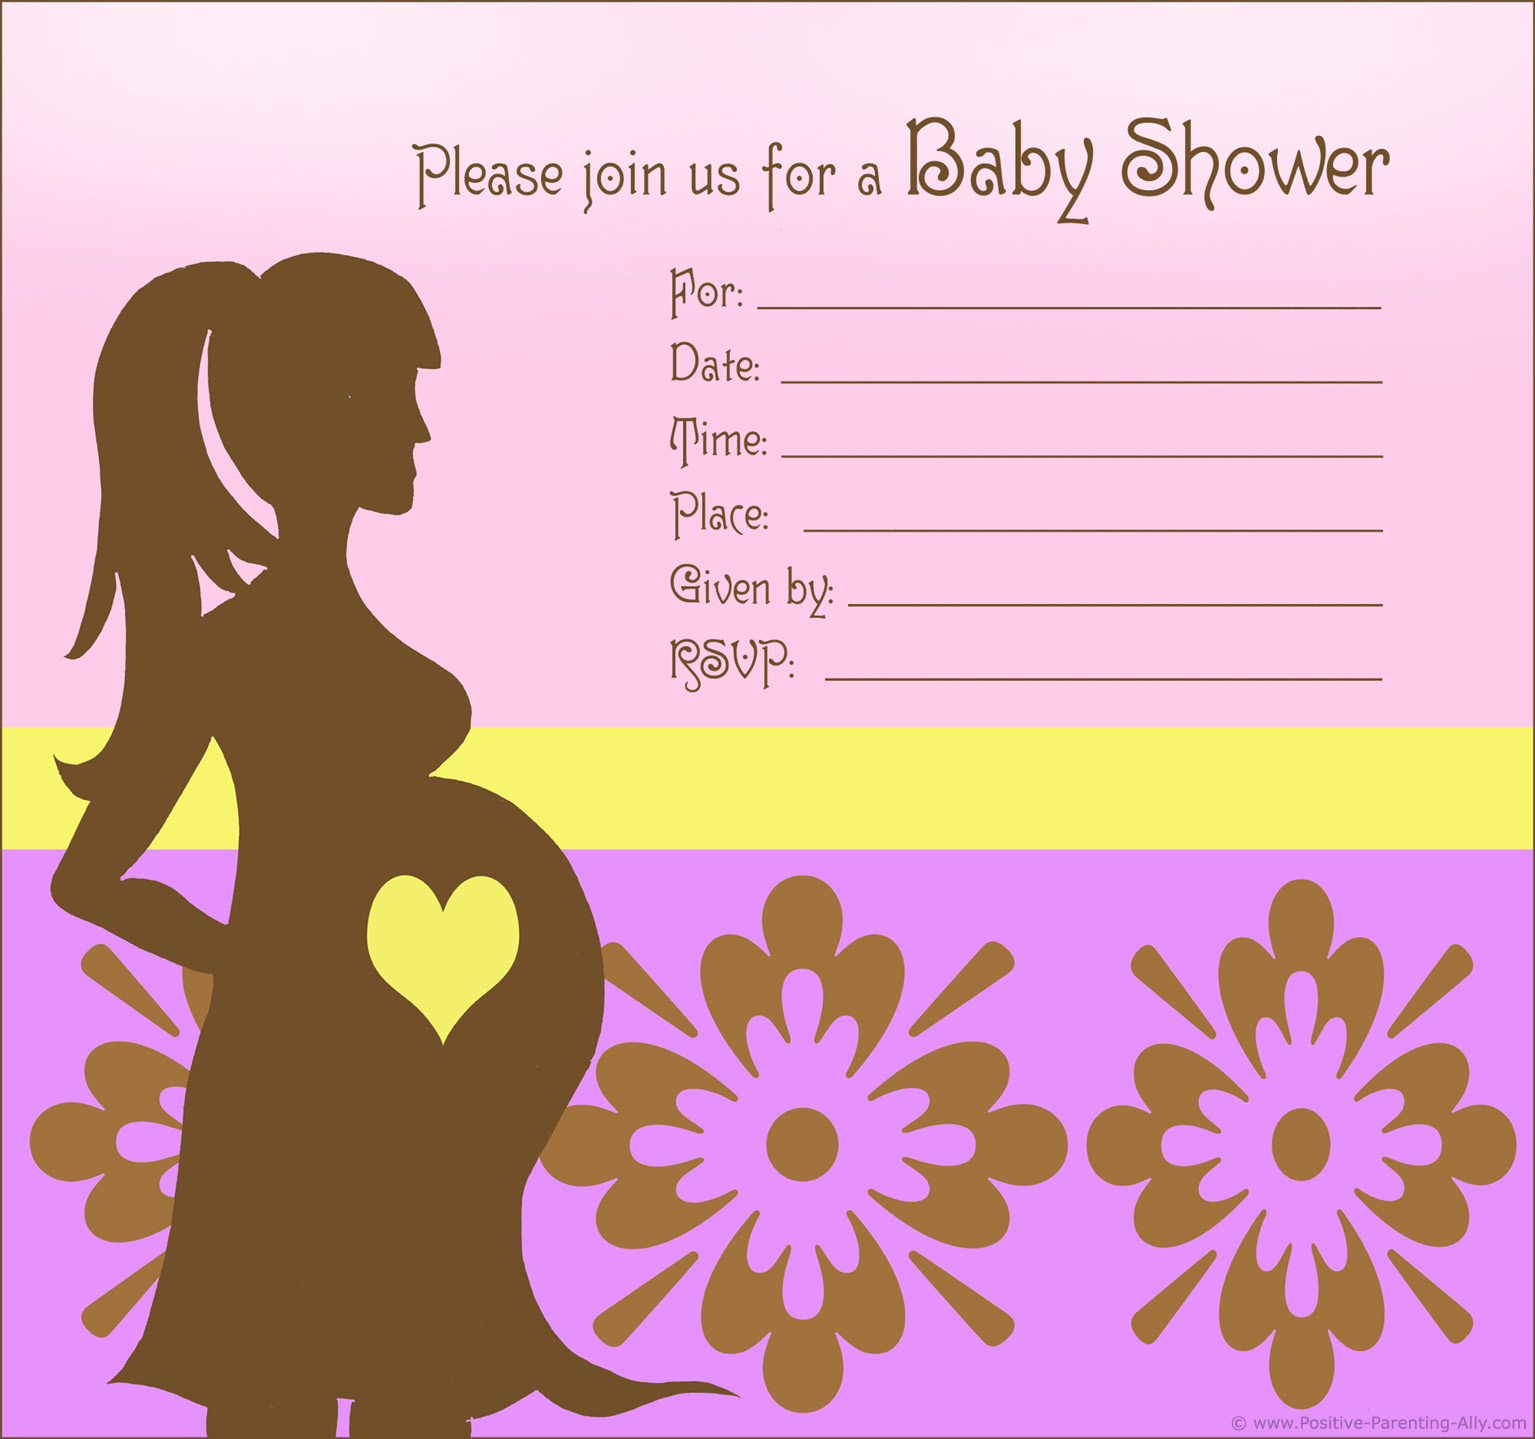 Free custom baby shower invitations in modern retro style for girls.